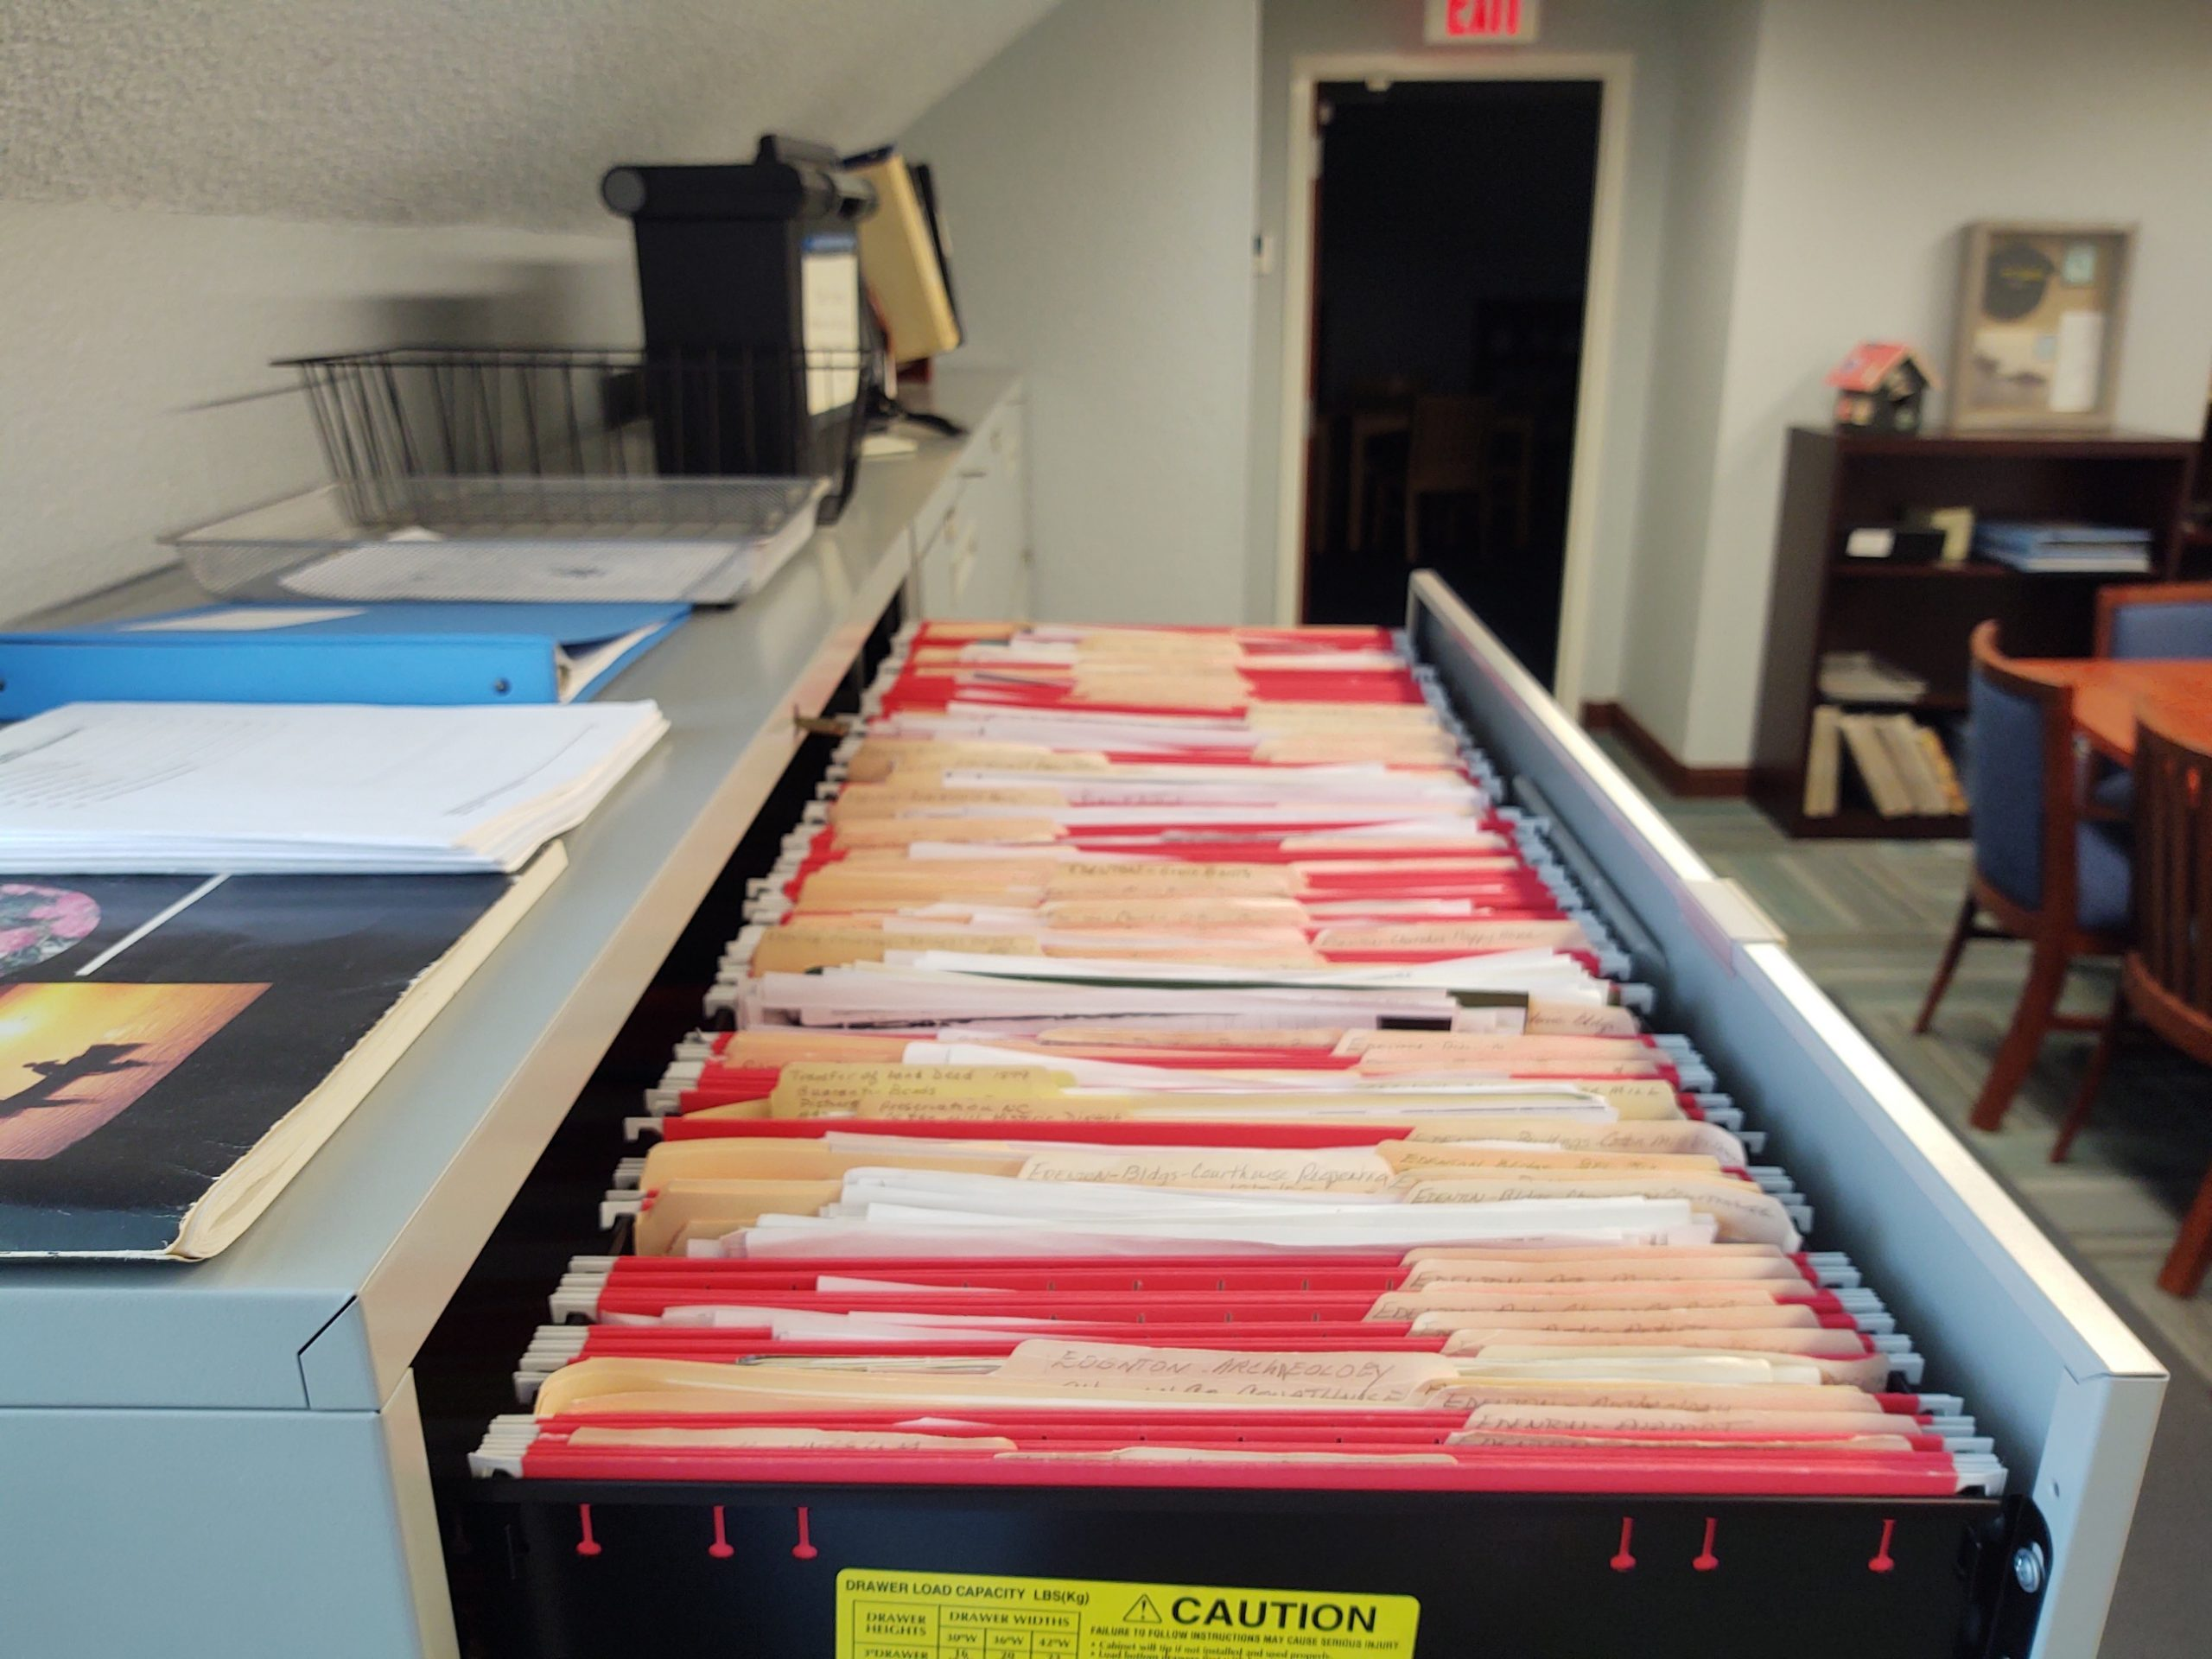 Long, open filing cabinet drawer filled with red and manilla files